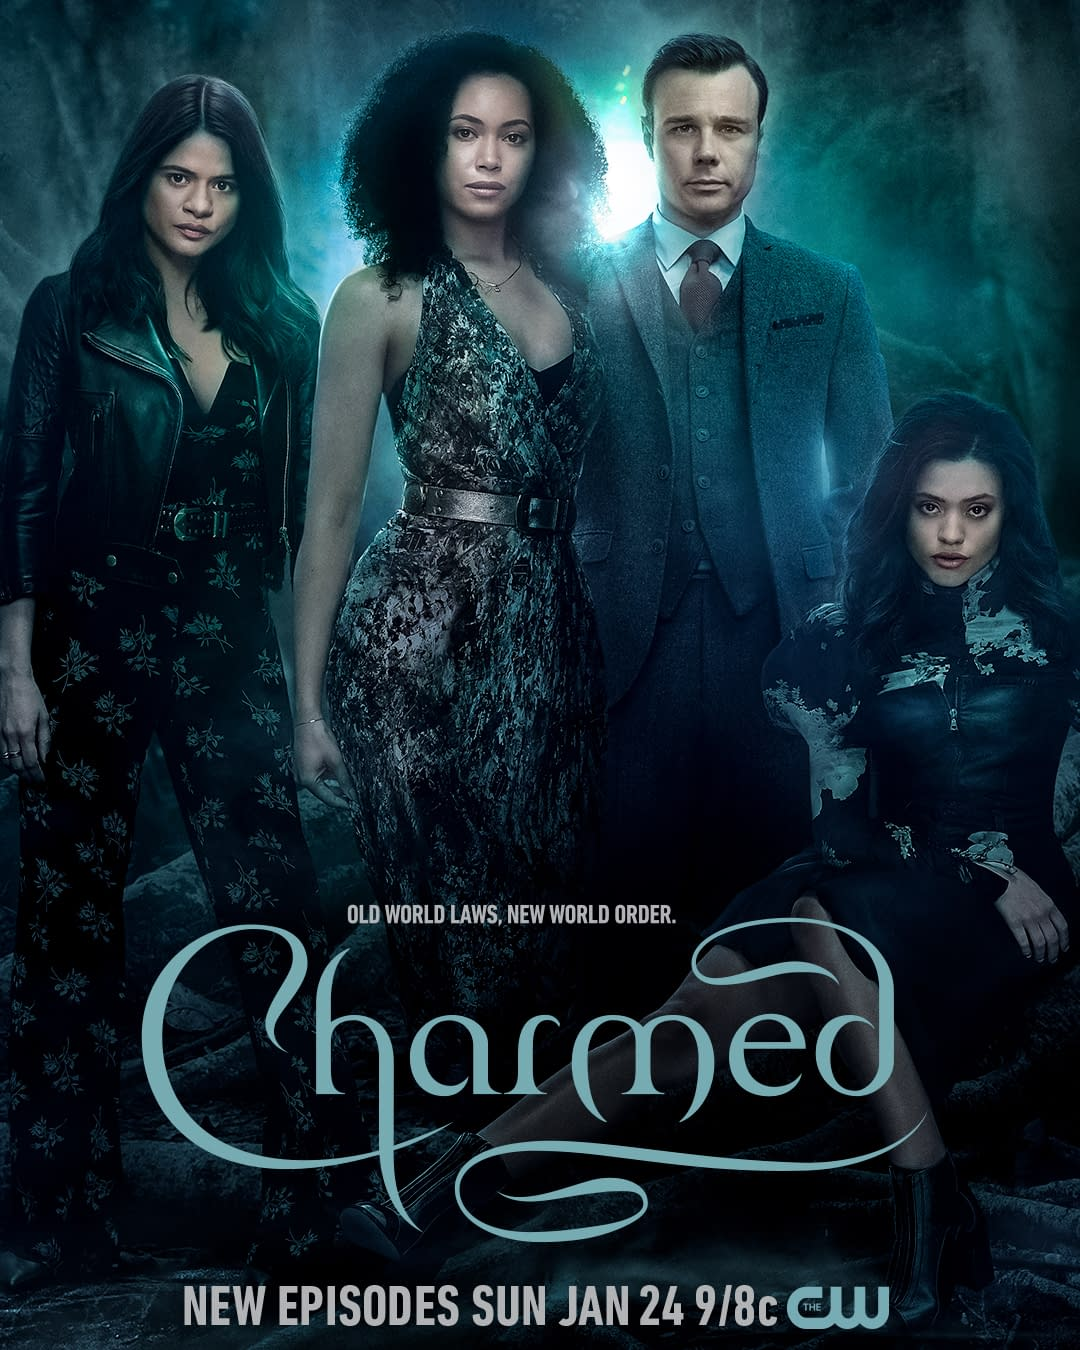 Charmed (2018) - Season 3 Episode 8